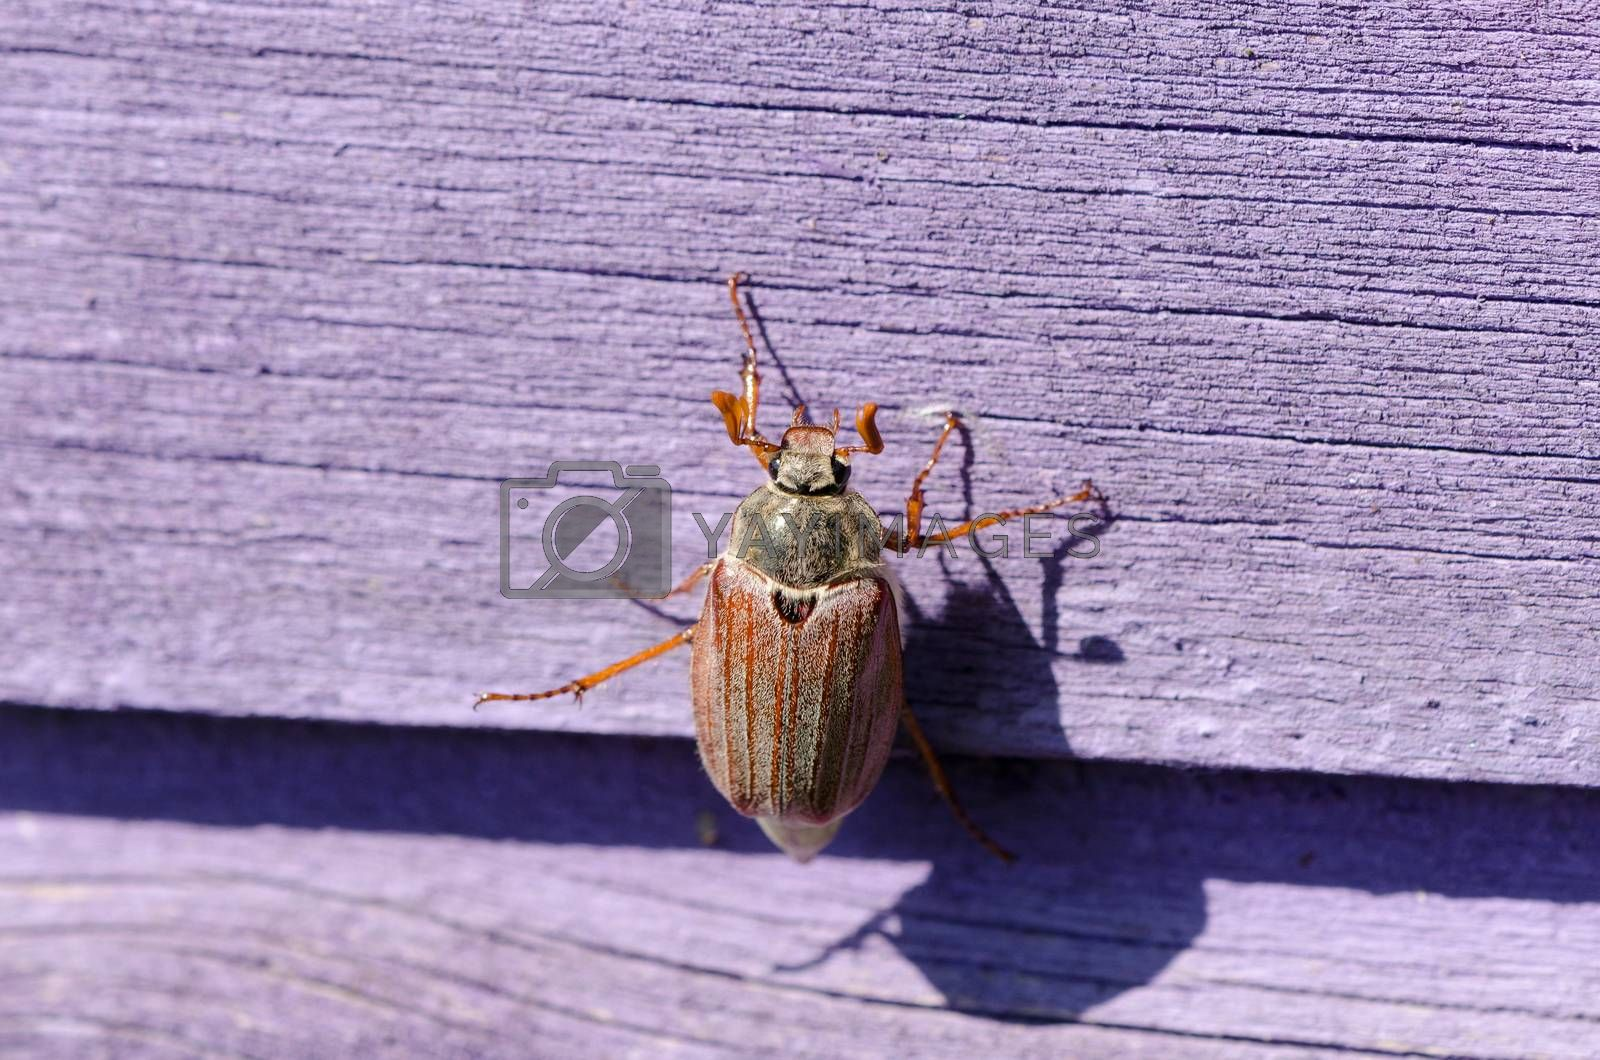 Royalty free image of dor chafer bug crawls on wooden purple surface  by sauletas